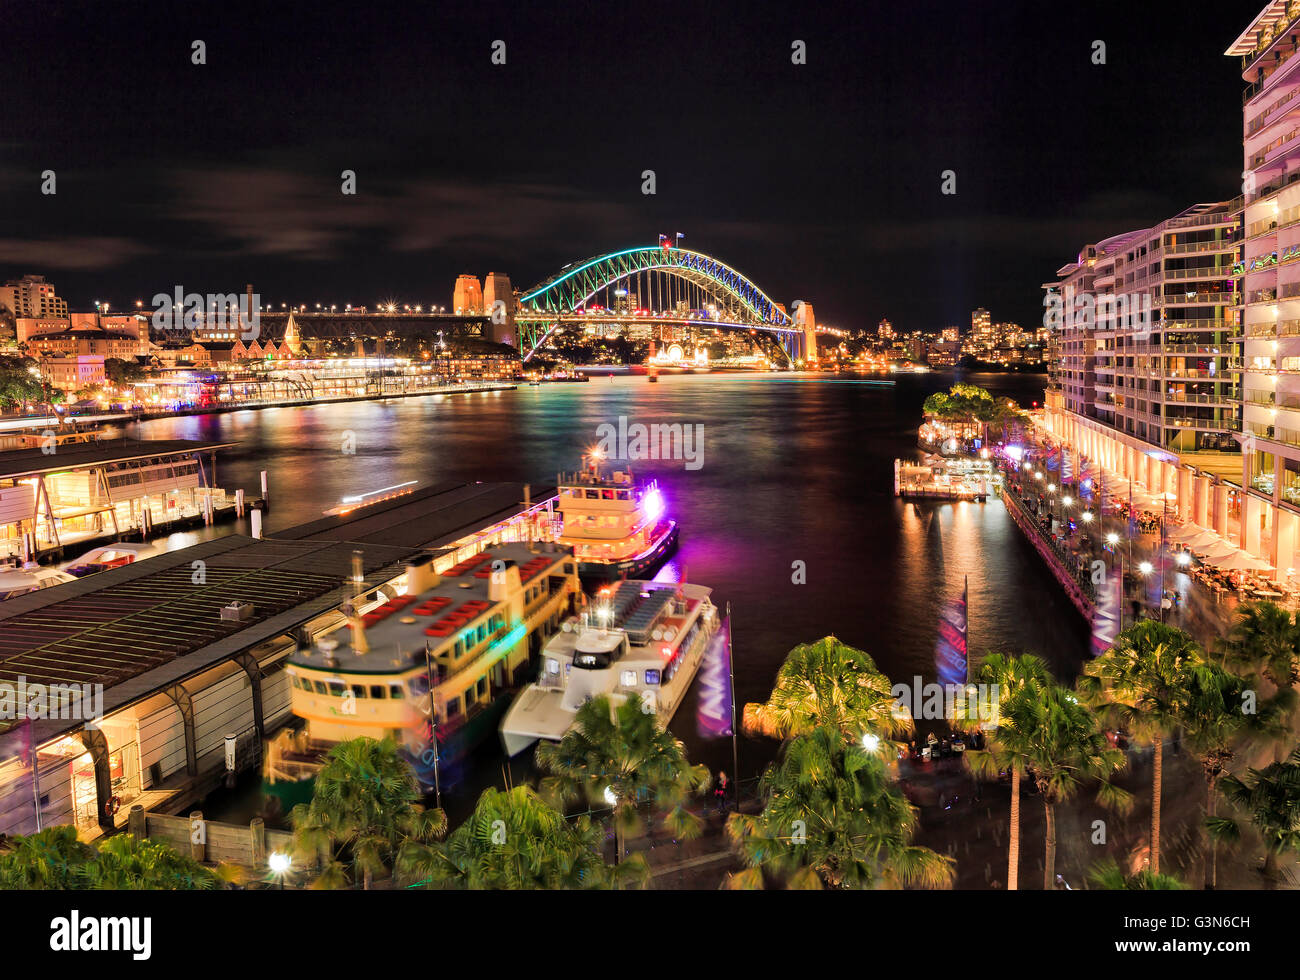 Elevated panorama of Sydney harbour circular quay bay at night during bright illumination by light towards the arch - Stock Image